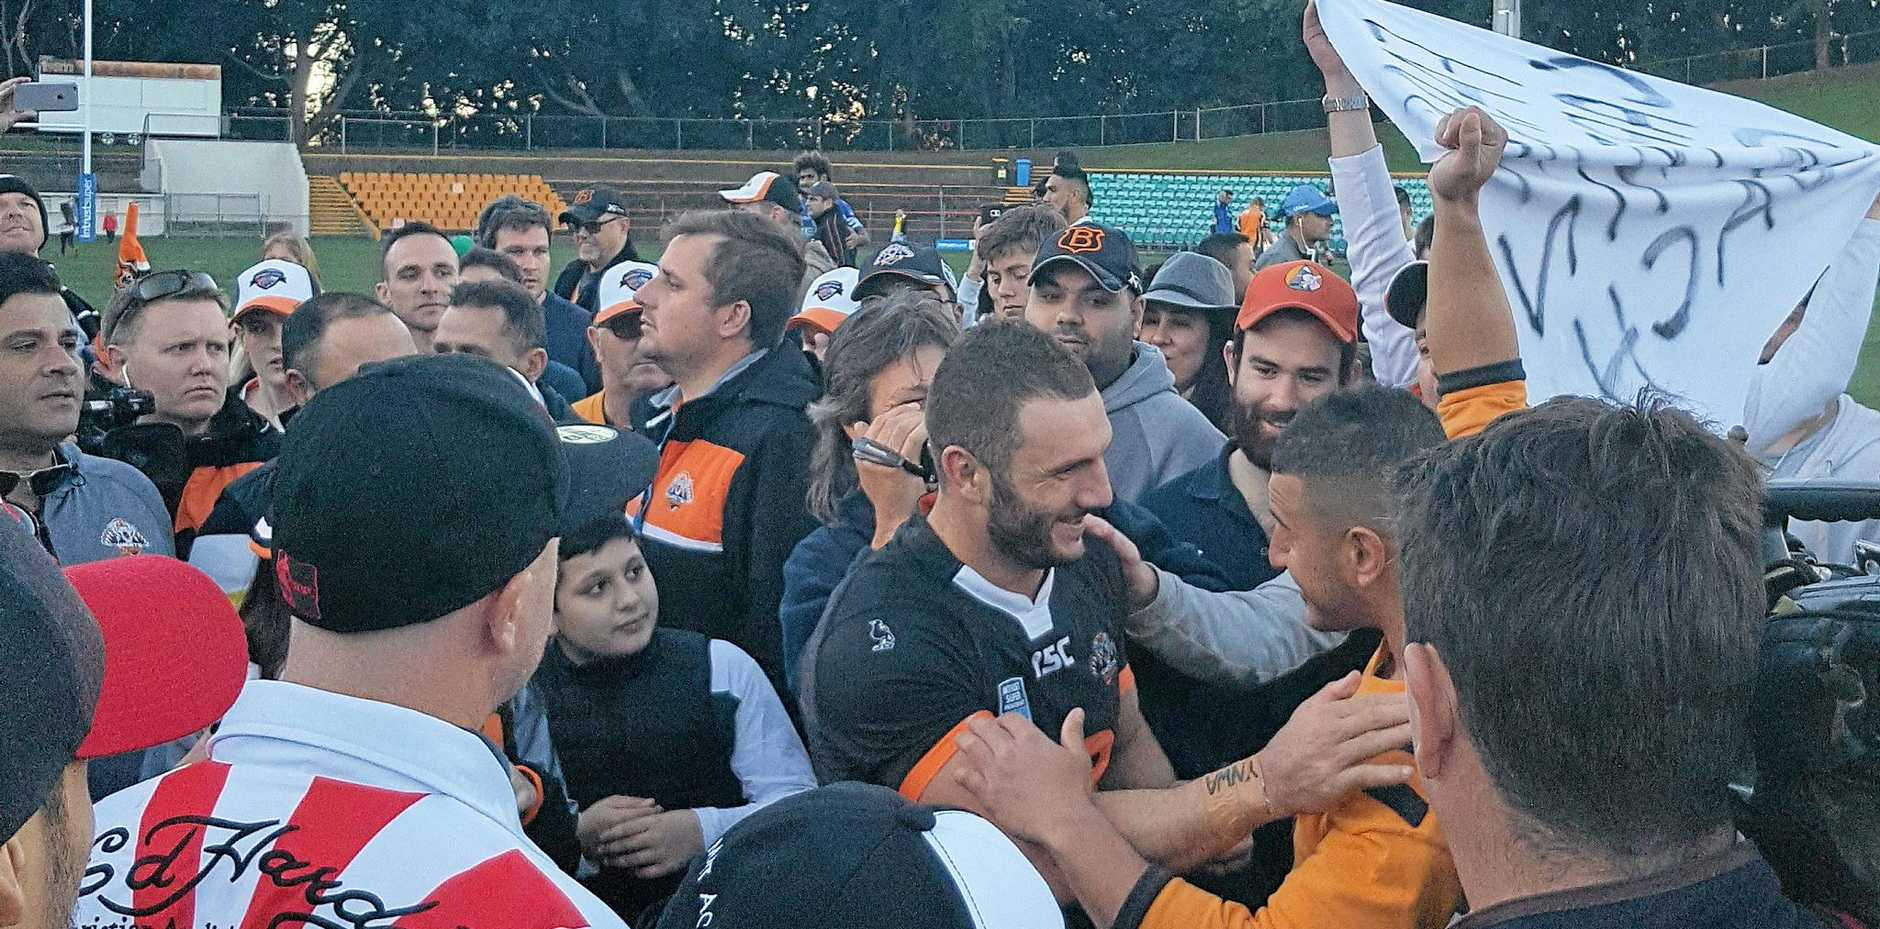 FAN FAVOURITE: Robbie Farah (centre) is swamped by fans after playing for Wests Tigers in their NSW Cup match against the Newtown Jets at Leichhardt Oval in Sydney.